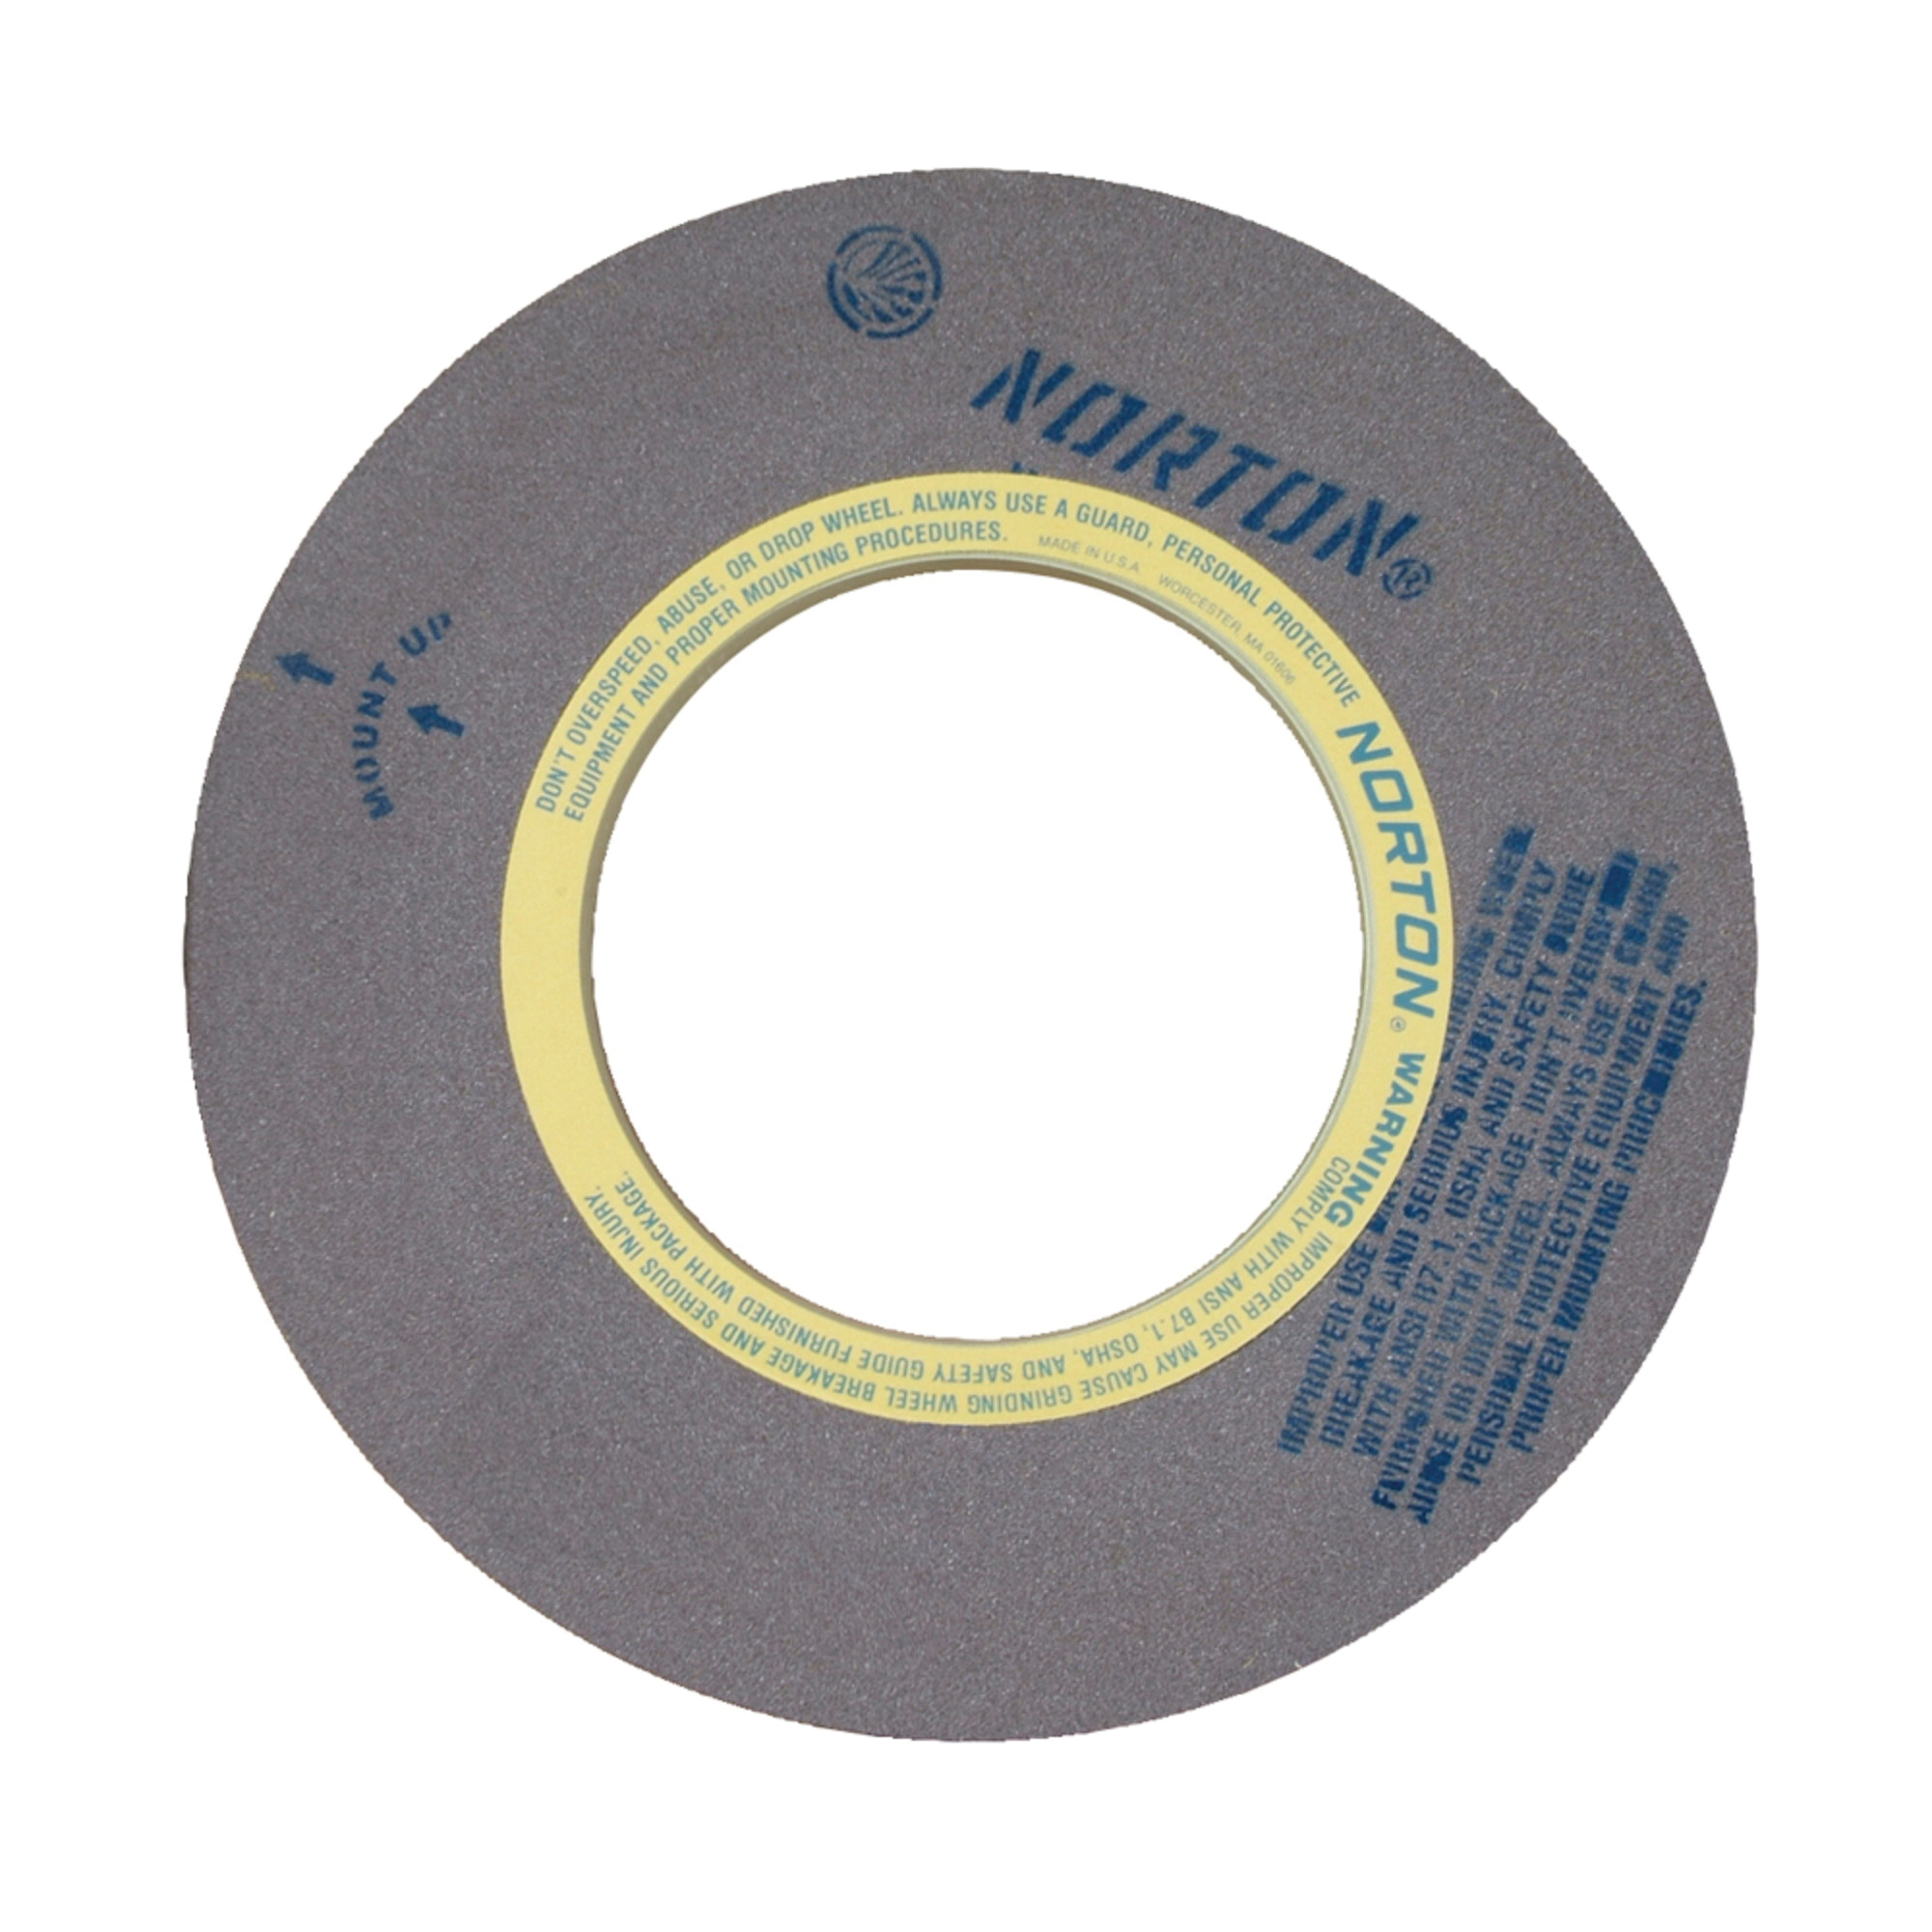 Norton® 69083166708 64A Centerless Grinding Wheel, 24 in Dia x 3 in THK, 12 in Center Hole, 60 Grit, Aluminum Oxide Abrasive